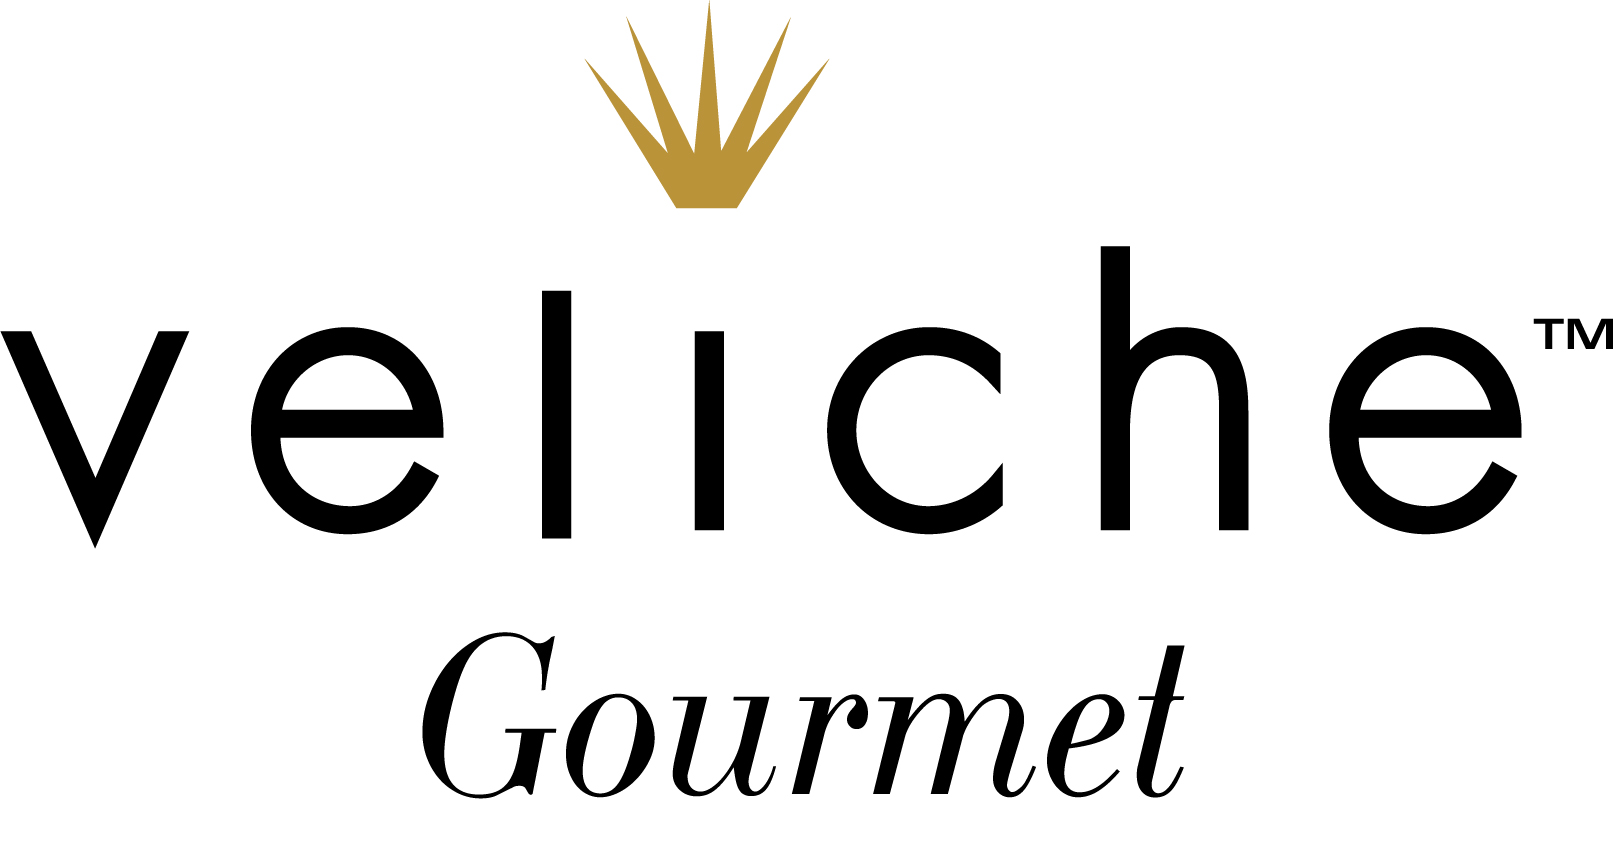 Veliche Gourmet: Cargill launches artisan chocolate brand